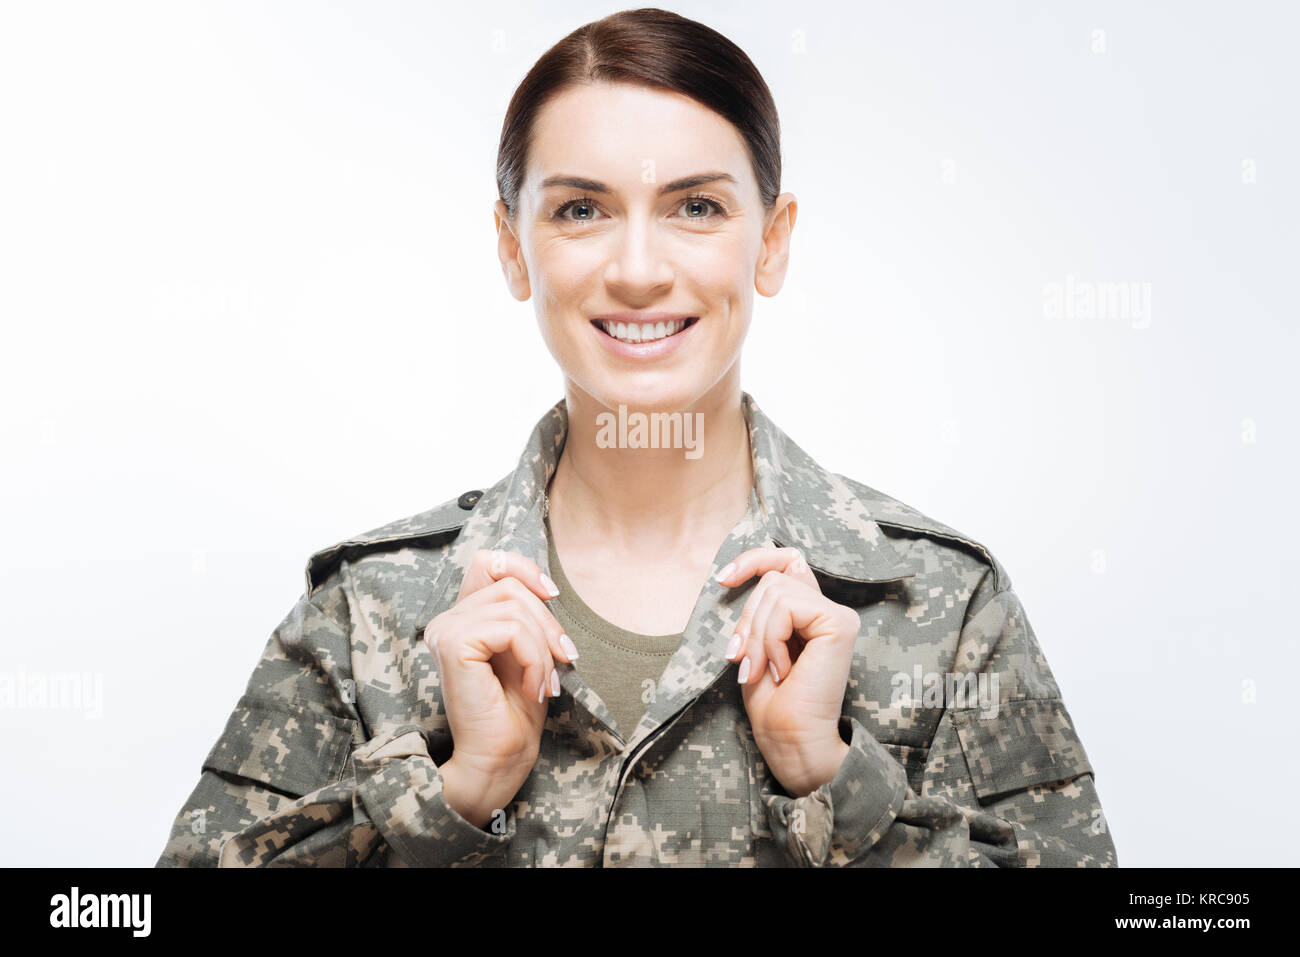 Nice pretty woman smiling in military uniform  - Stock Image